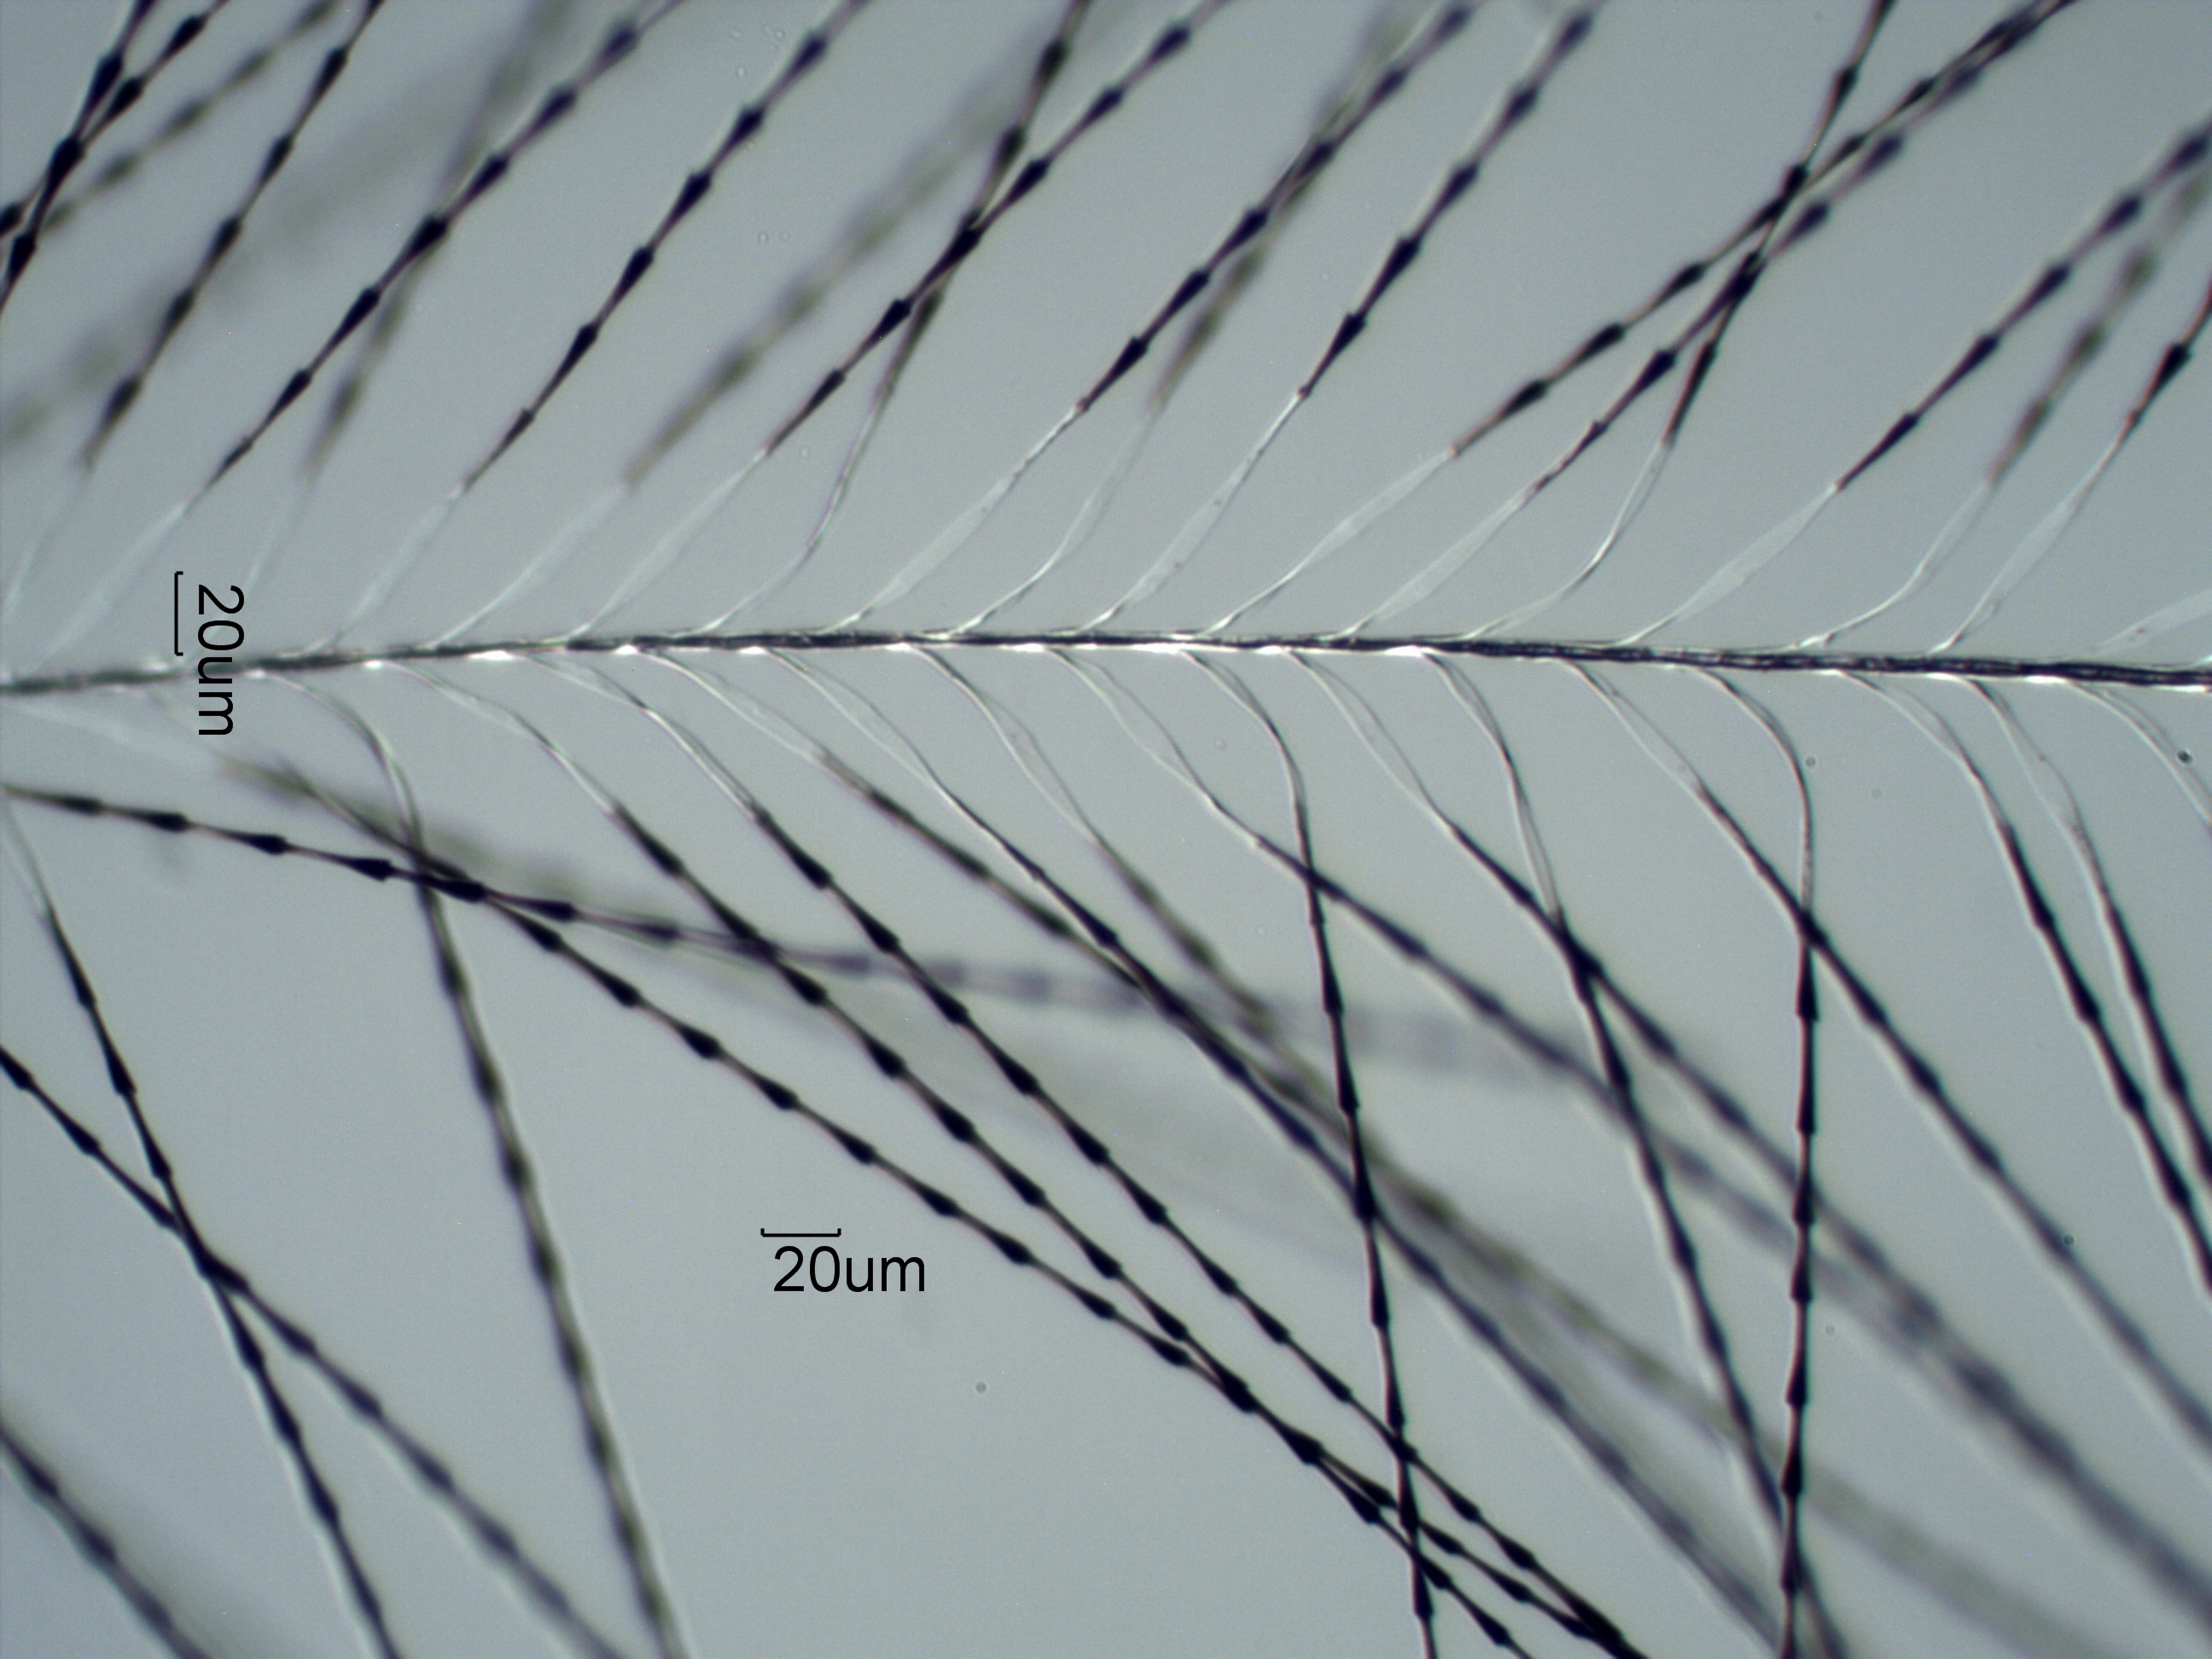 Hummingbird Down 1 feather barbules under the microscope